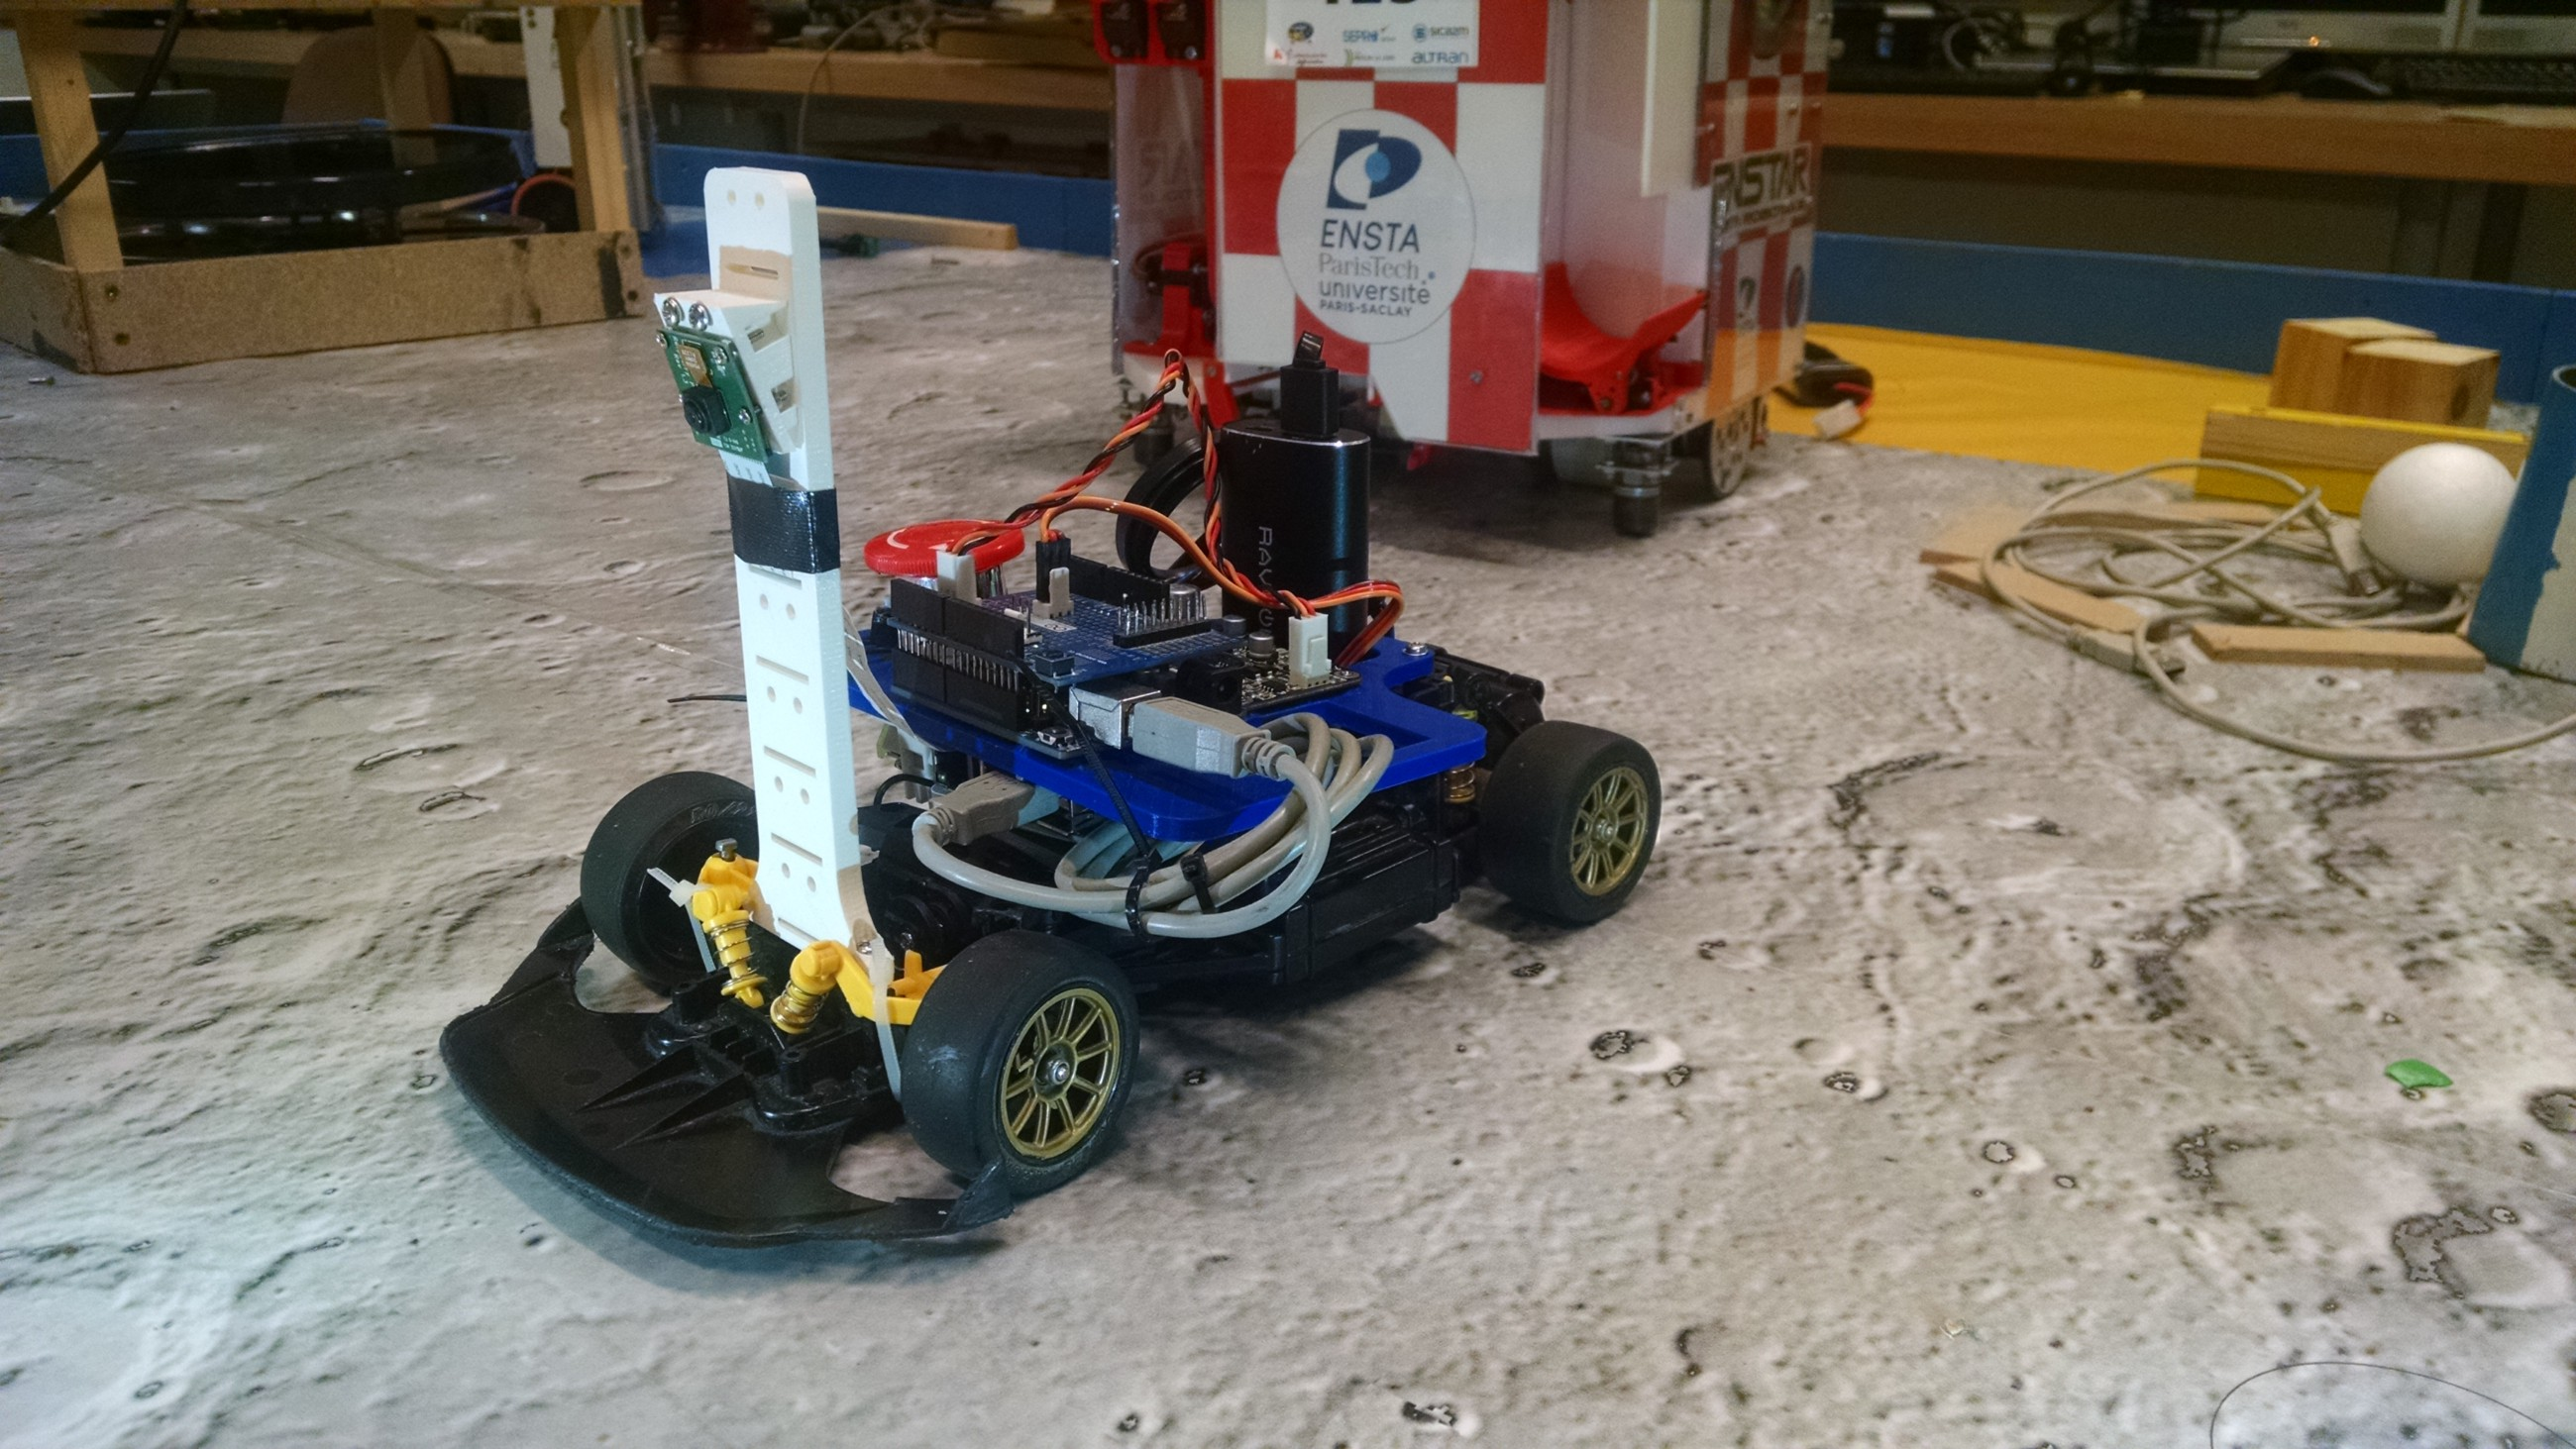 Autonomous Racing Robot With An Arduino A Raspberry Pi And Camera Controlled Toy Car Circuit Homemade Designs Just For You Competition In Toulouse Friend I Designed Programmed Powered By Uno